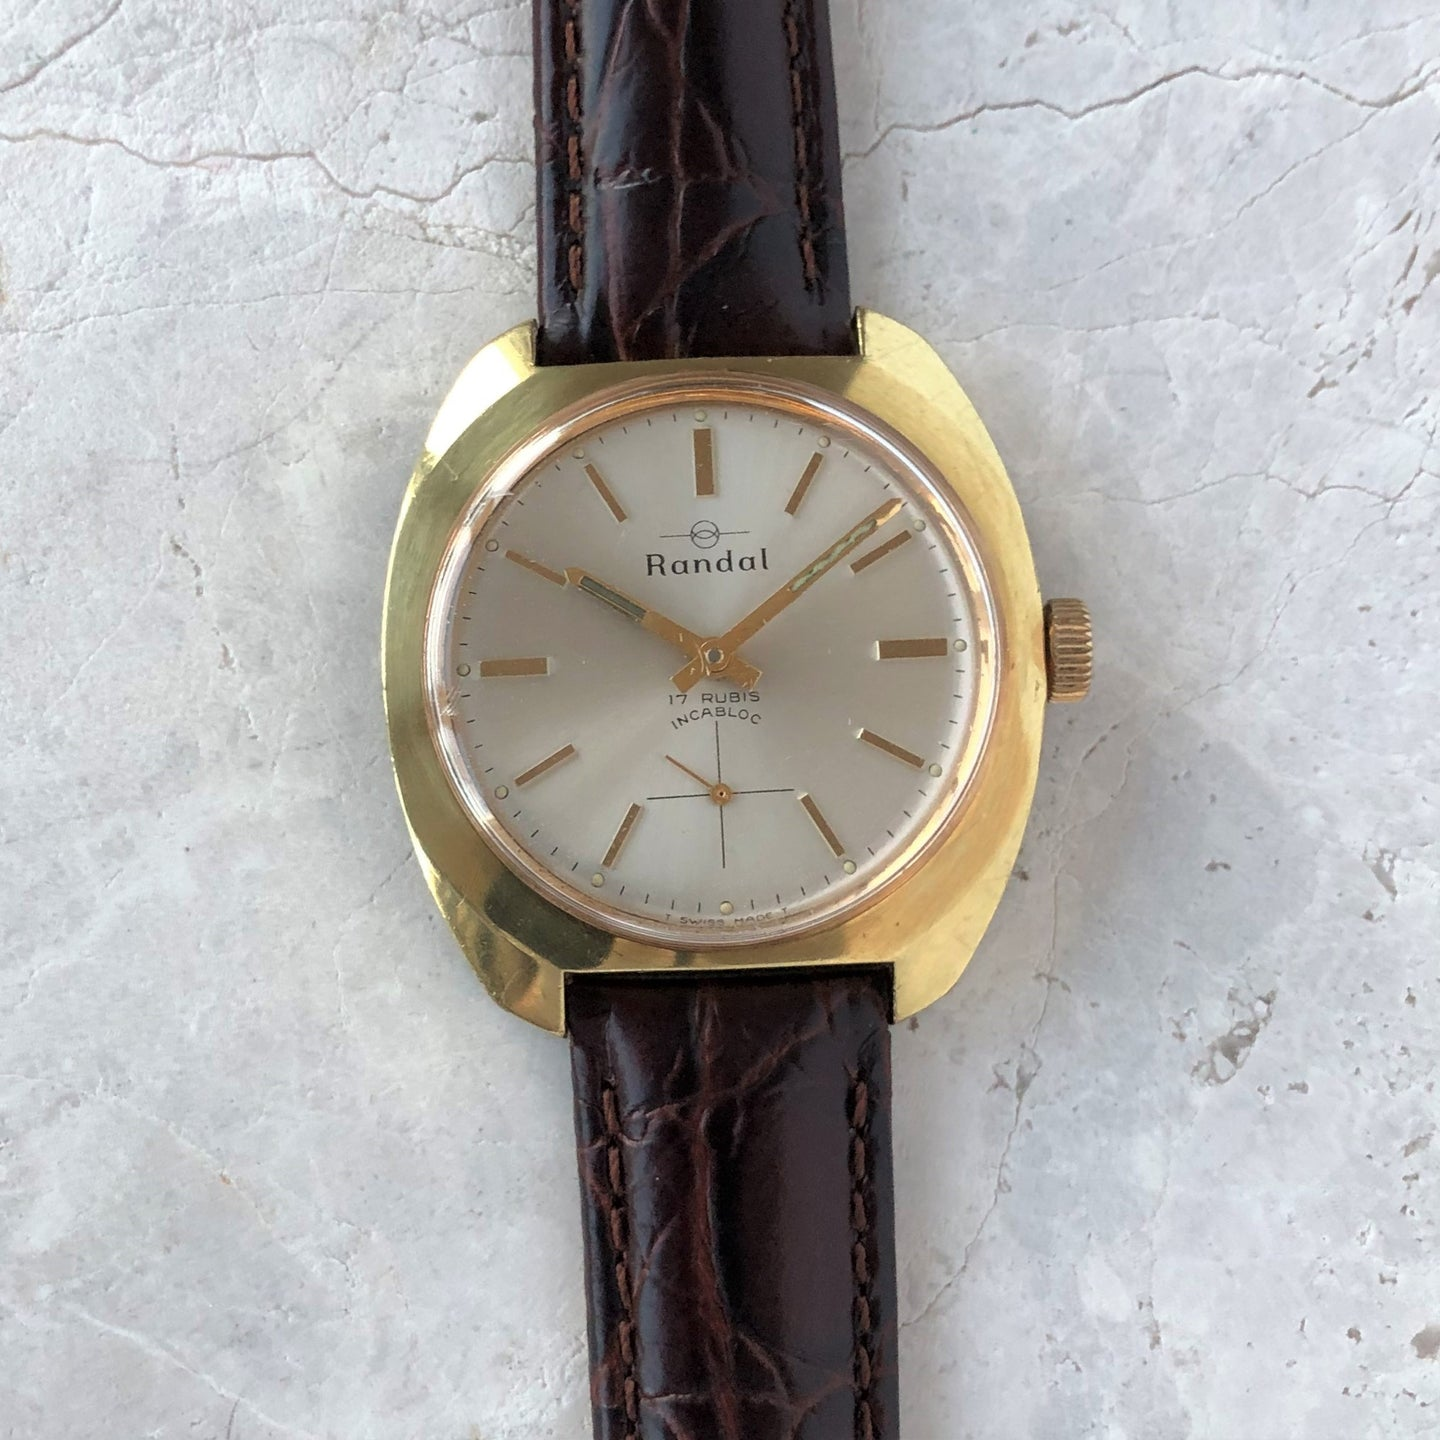 Randal vintage watch